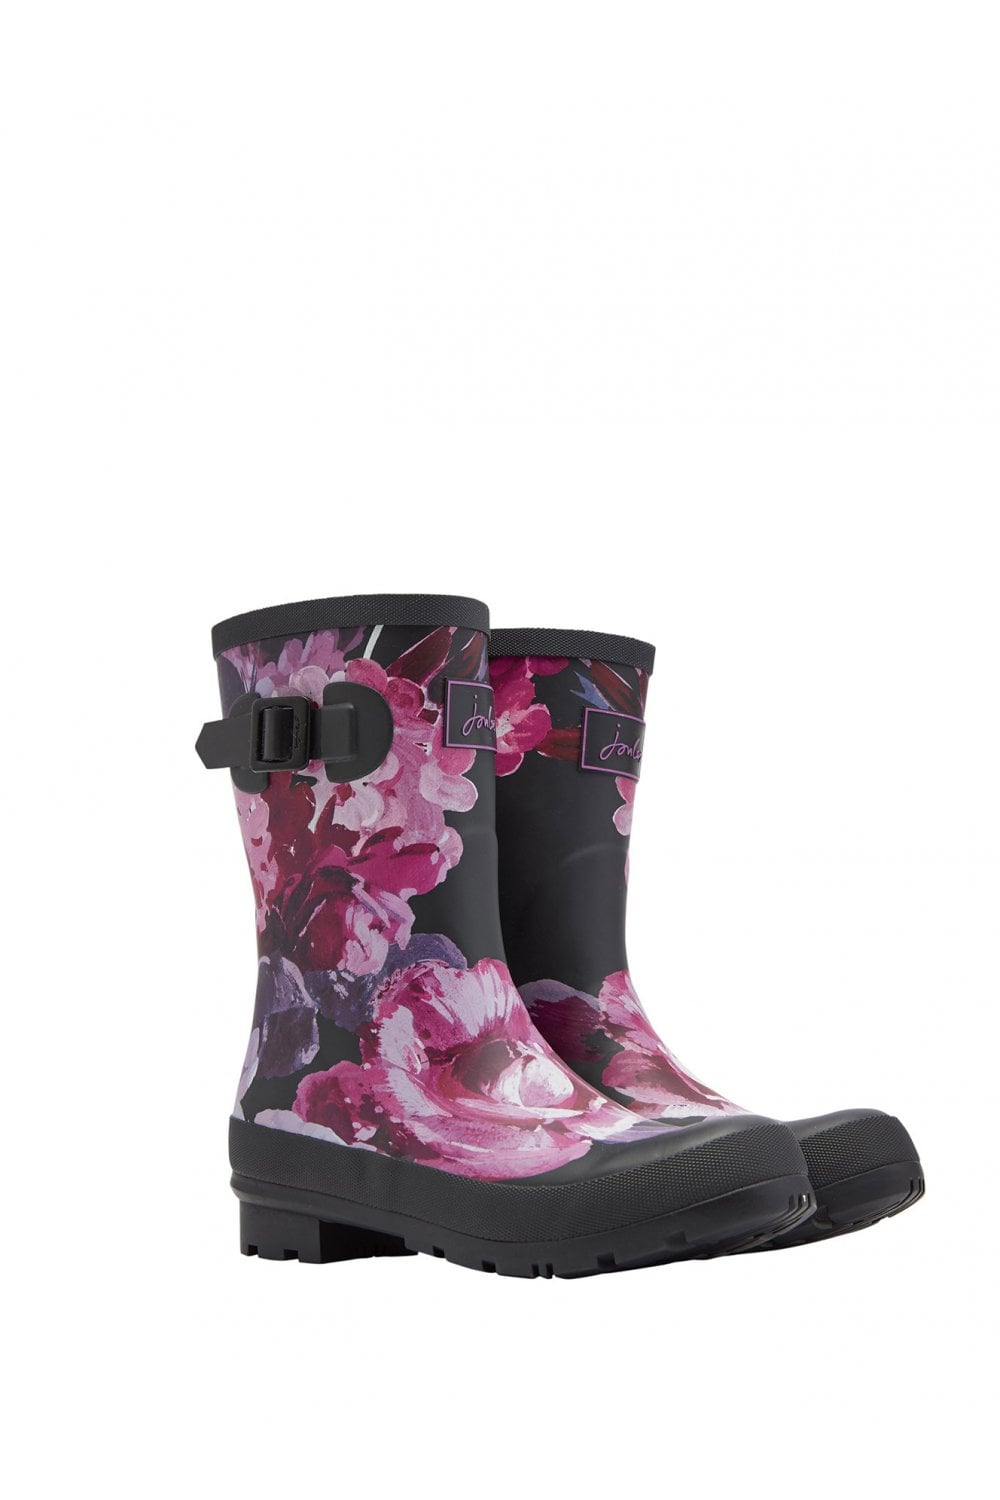 Joules Womens Molly Mid-Height Printed Wellies - Black Winter Floral ... 3e358e40a